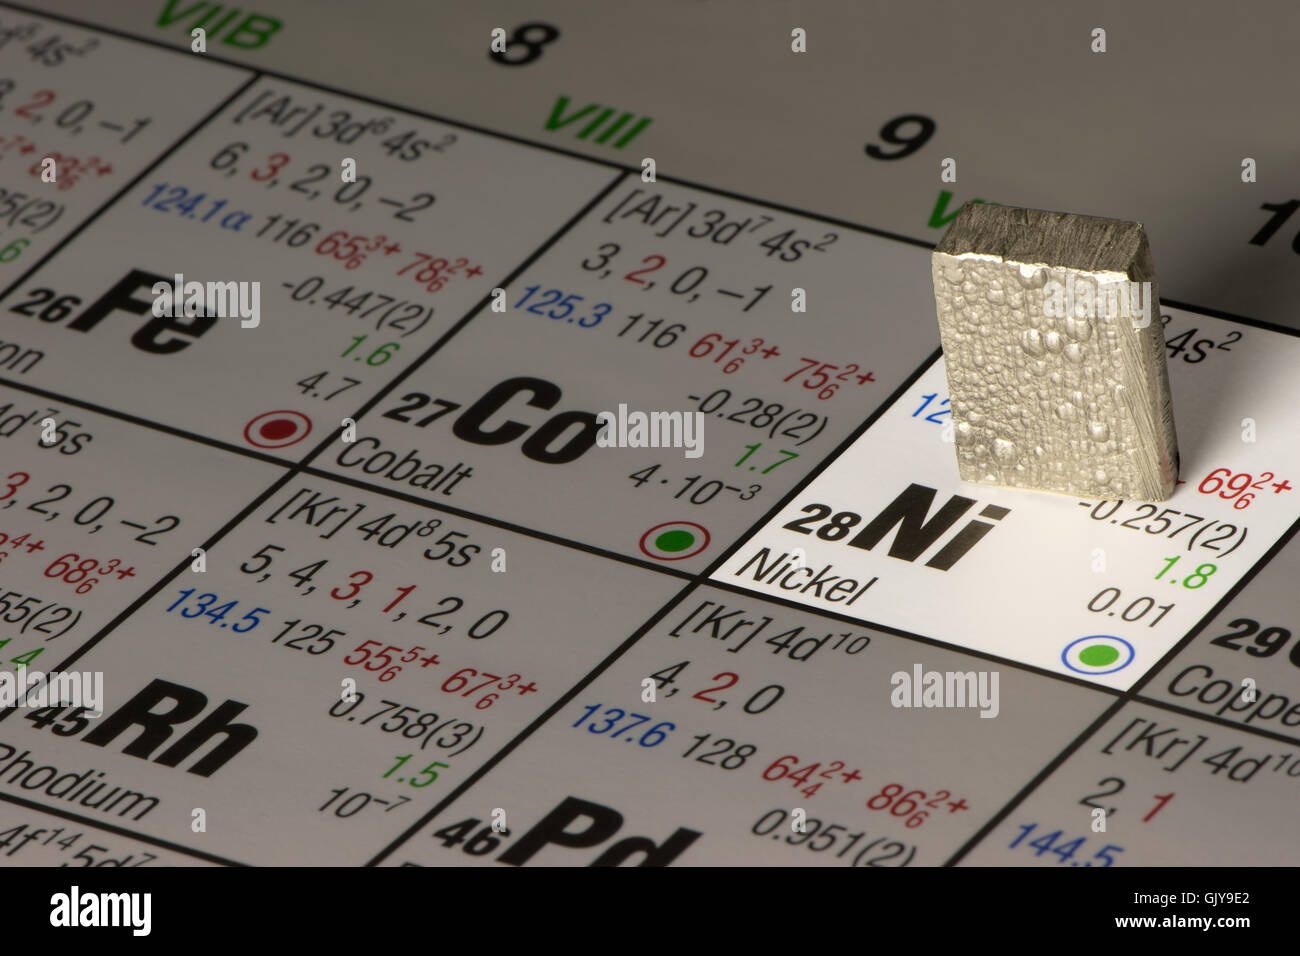 Piece Of Nickel On Periodic Table Of Elements Stock Photo 114926170